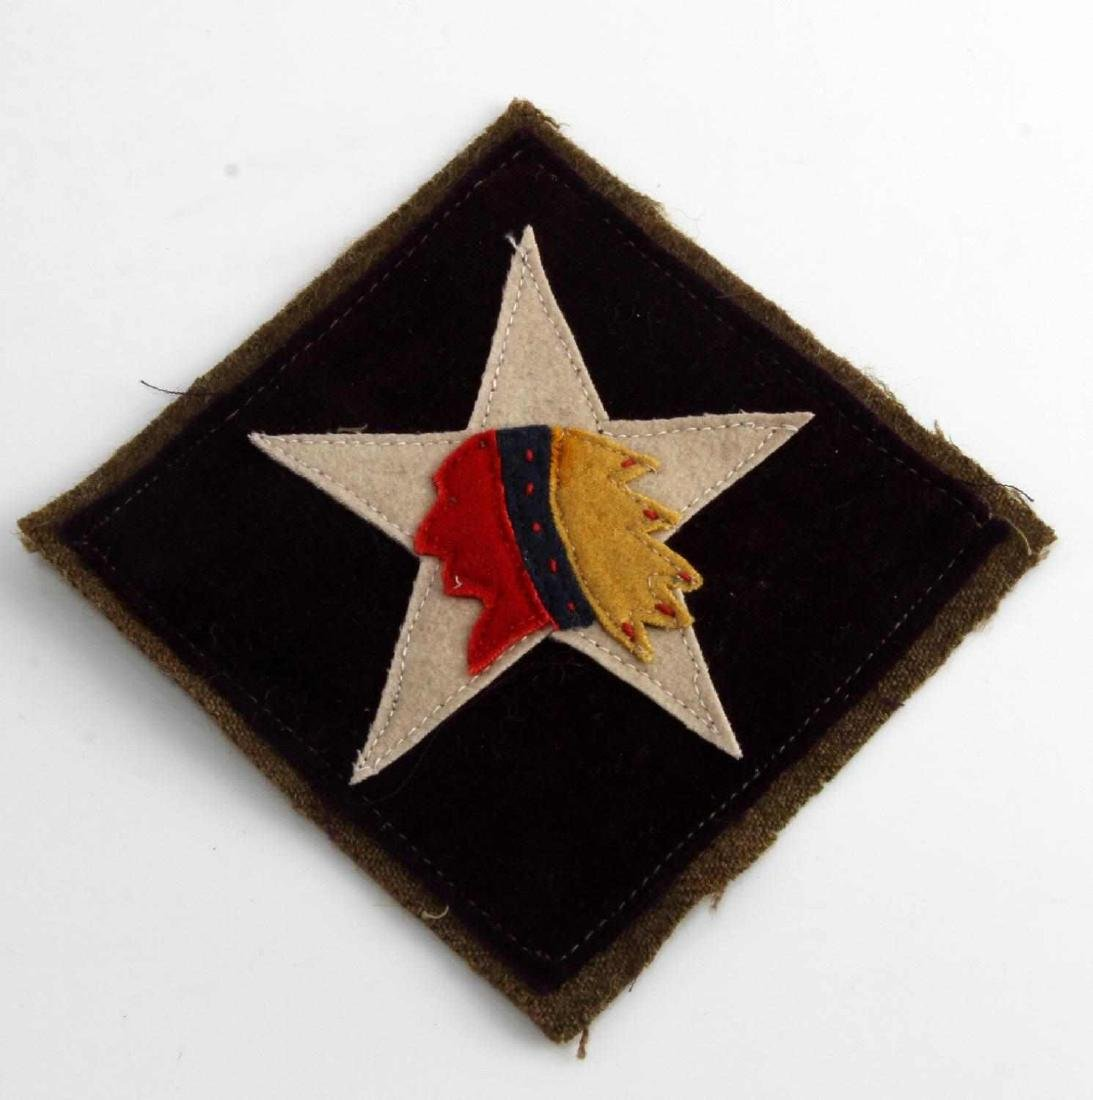 USMC WWI 6TH MARINE MG REGIMENT SHOULDER PATCH